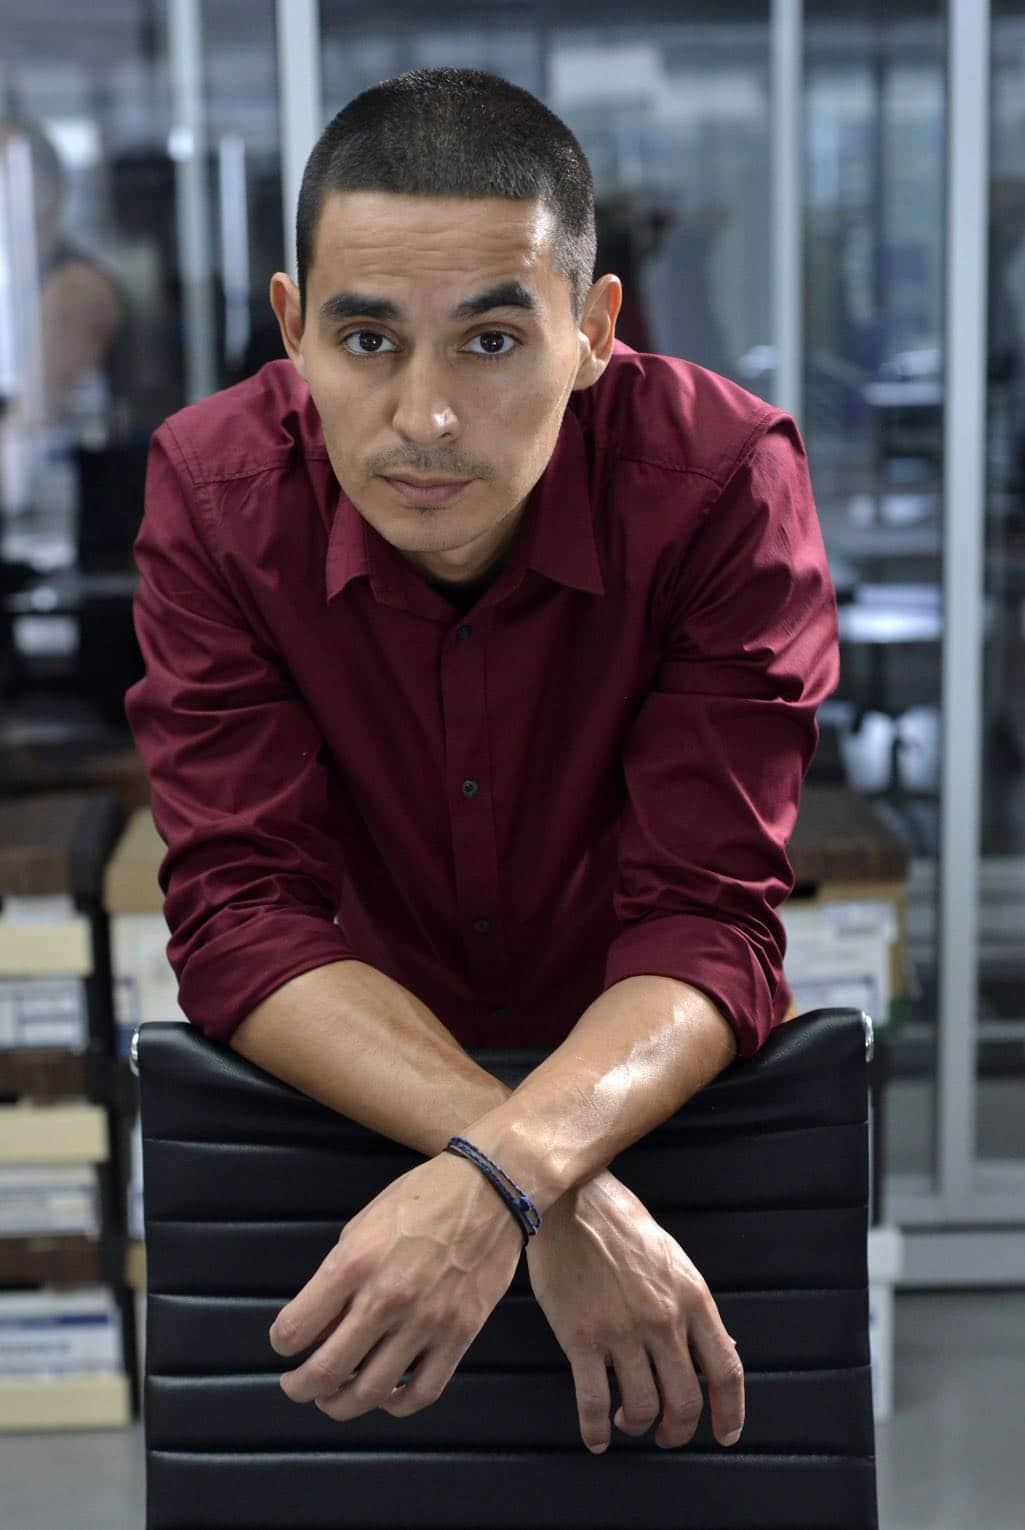 manny montana heightmanny montana gif, manny montana tumblr, manny montana imdb, manny montana instagram, manny montana gif hunt, manny montana, manny montana age, manny montana girlfriend, manny montana tattoo, manny montana graceland, manny montana interviews, manny montana 2015, manny montana tattoo meaning, manny montana ethnicity, manny montana net worth, manny montana twitter, manny montana gay, manny montana girlfriend 2014, manny montana height, manny montana birthday